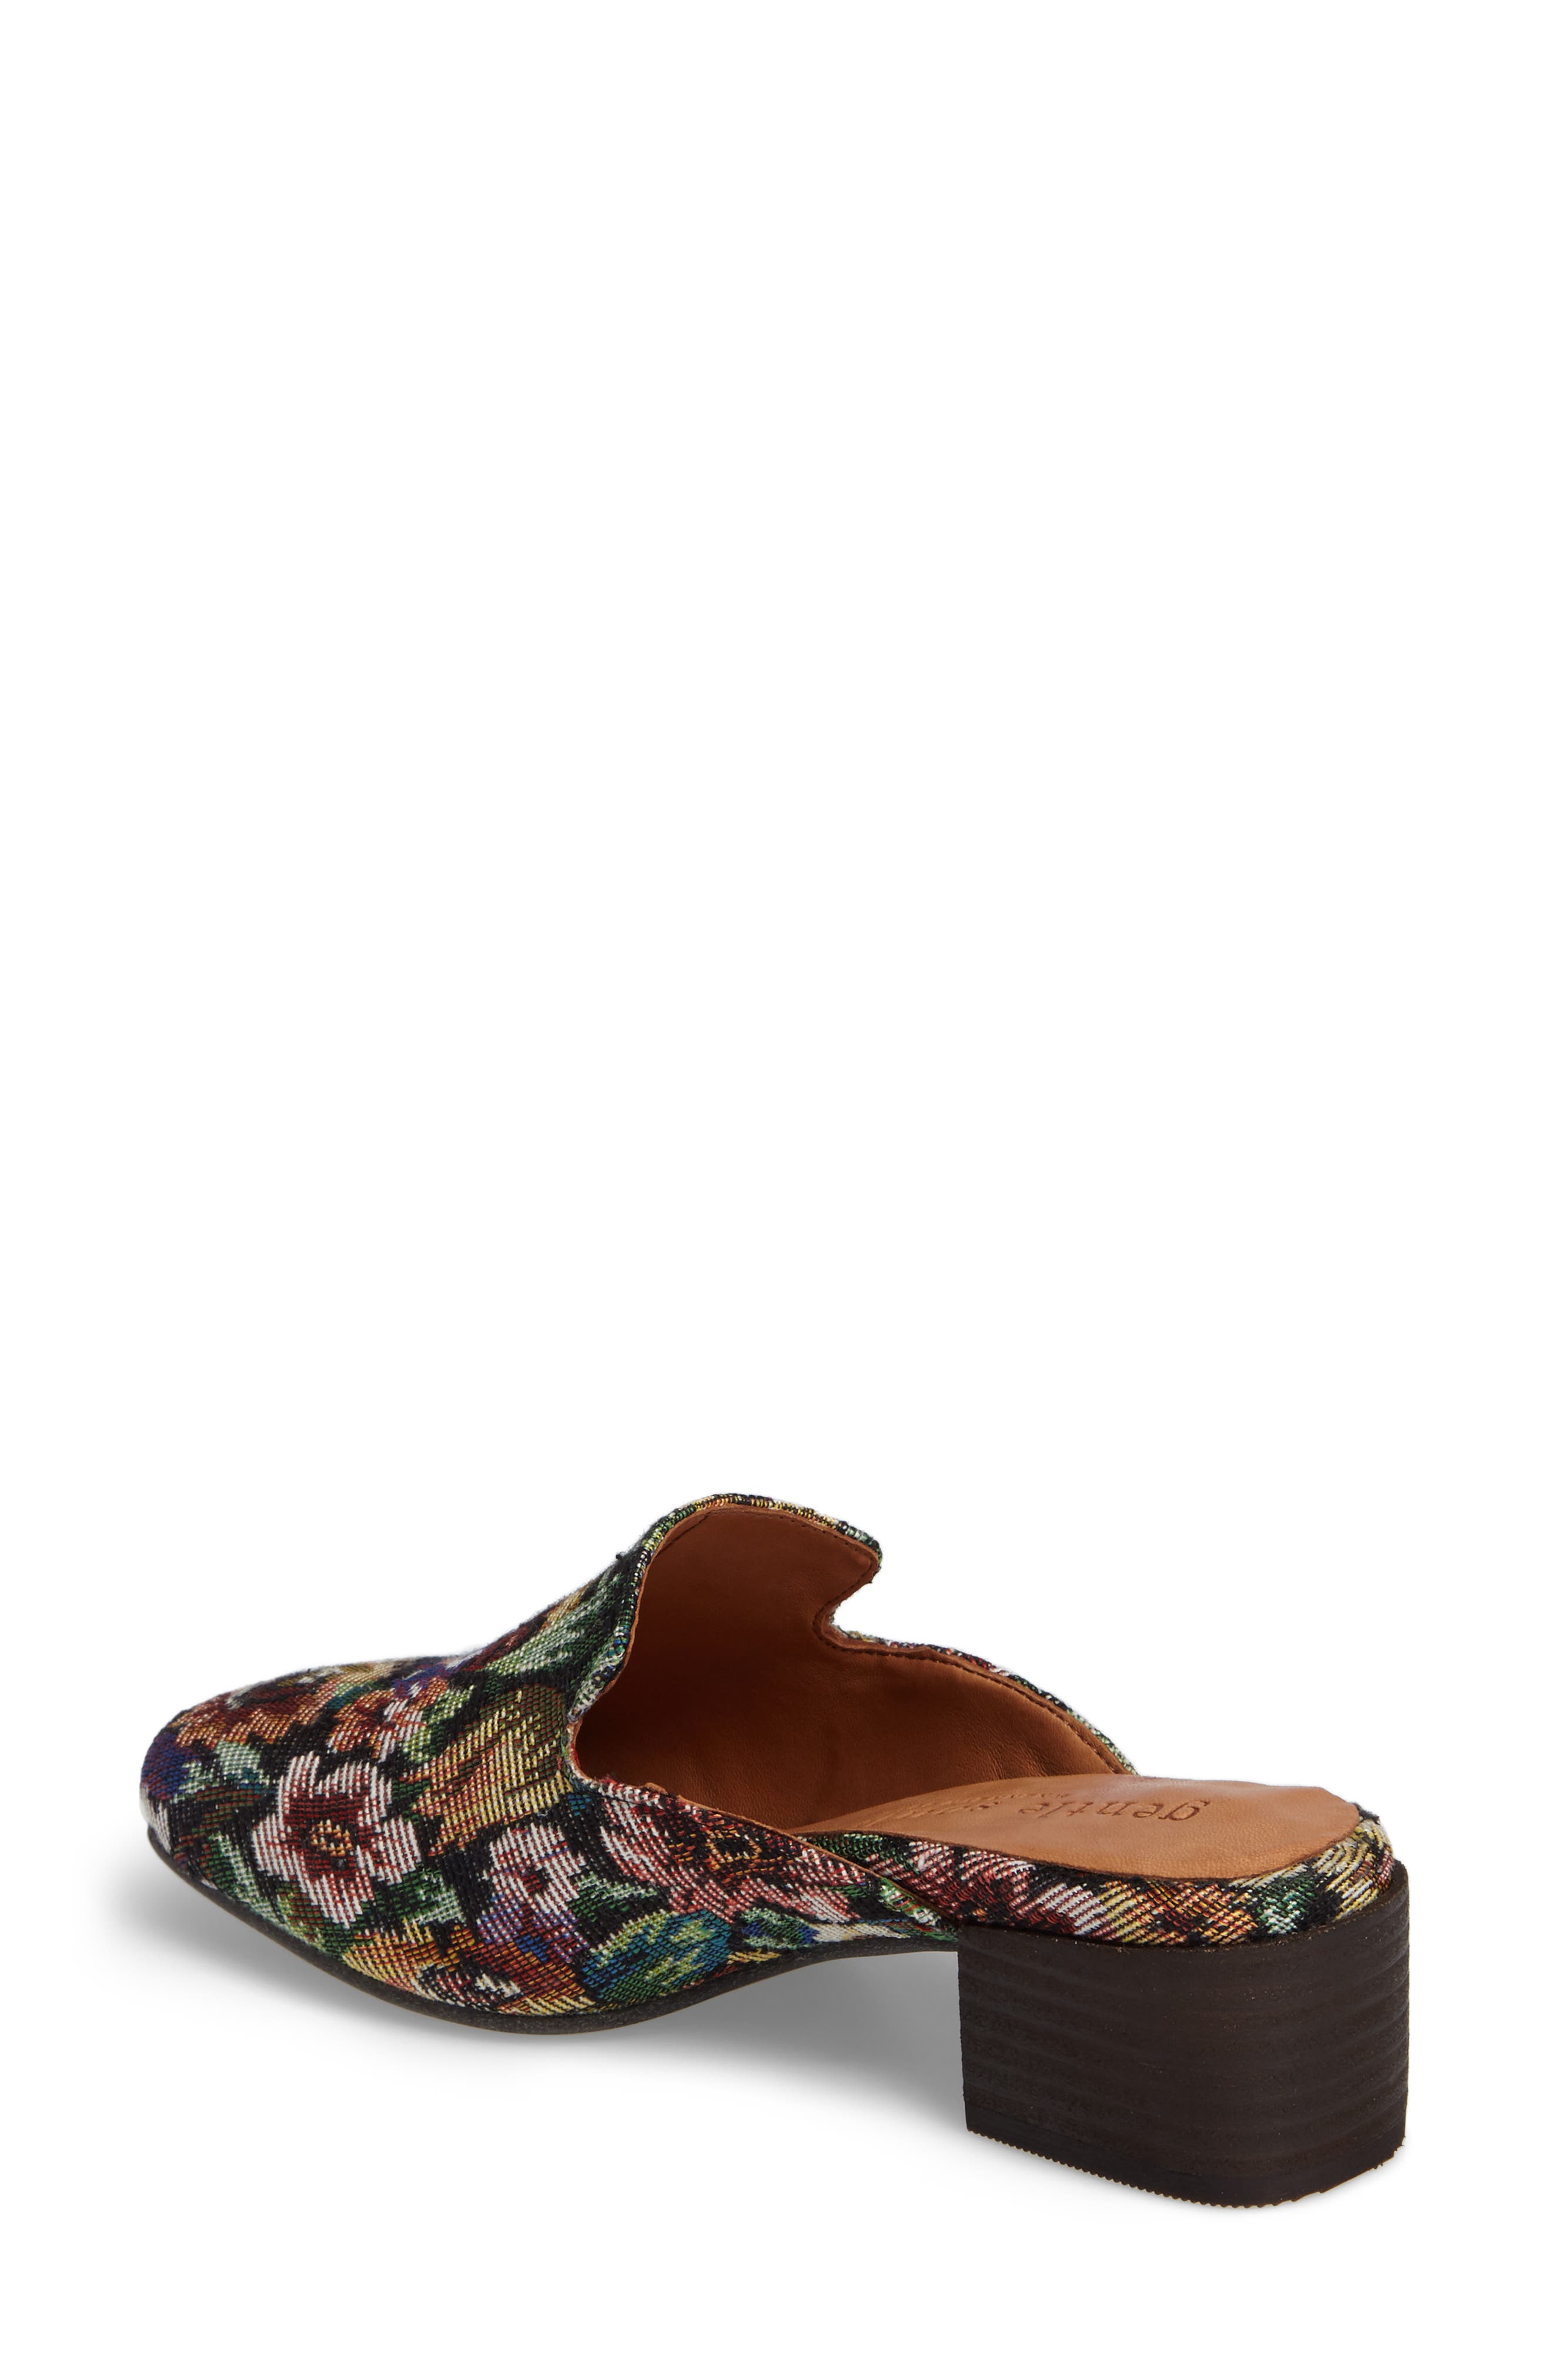 Eida Loafer Mule,                             Alternate thumbnail 2, color,                             Floral Fabric